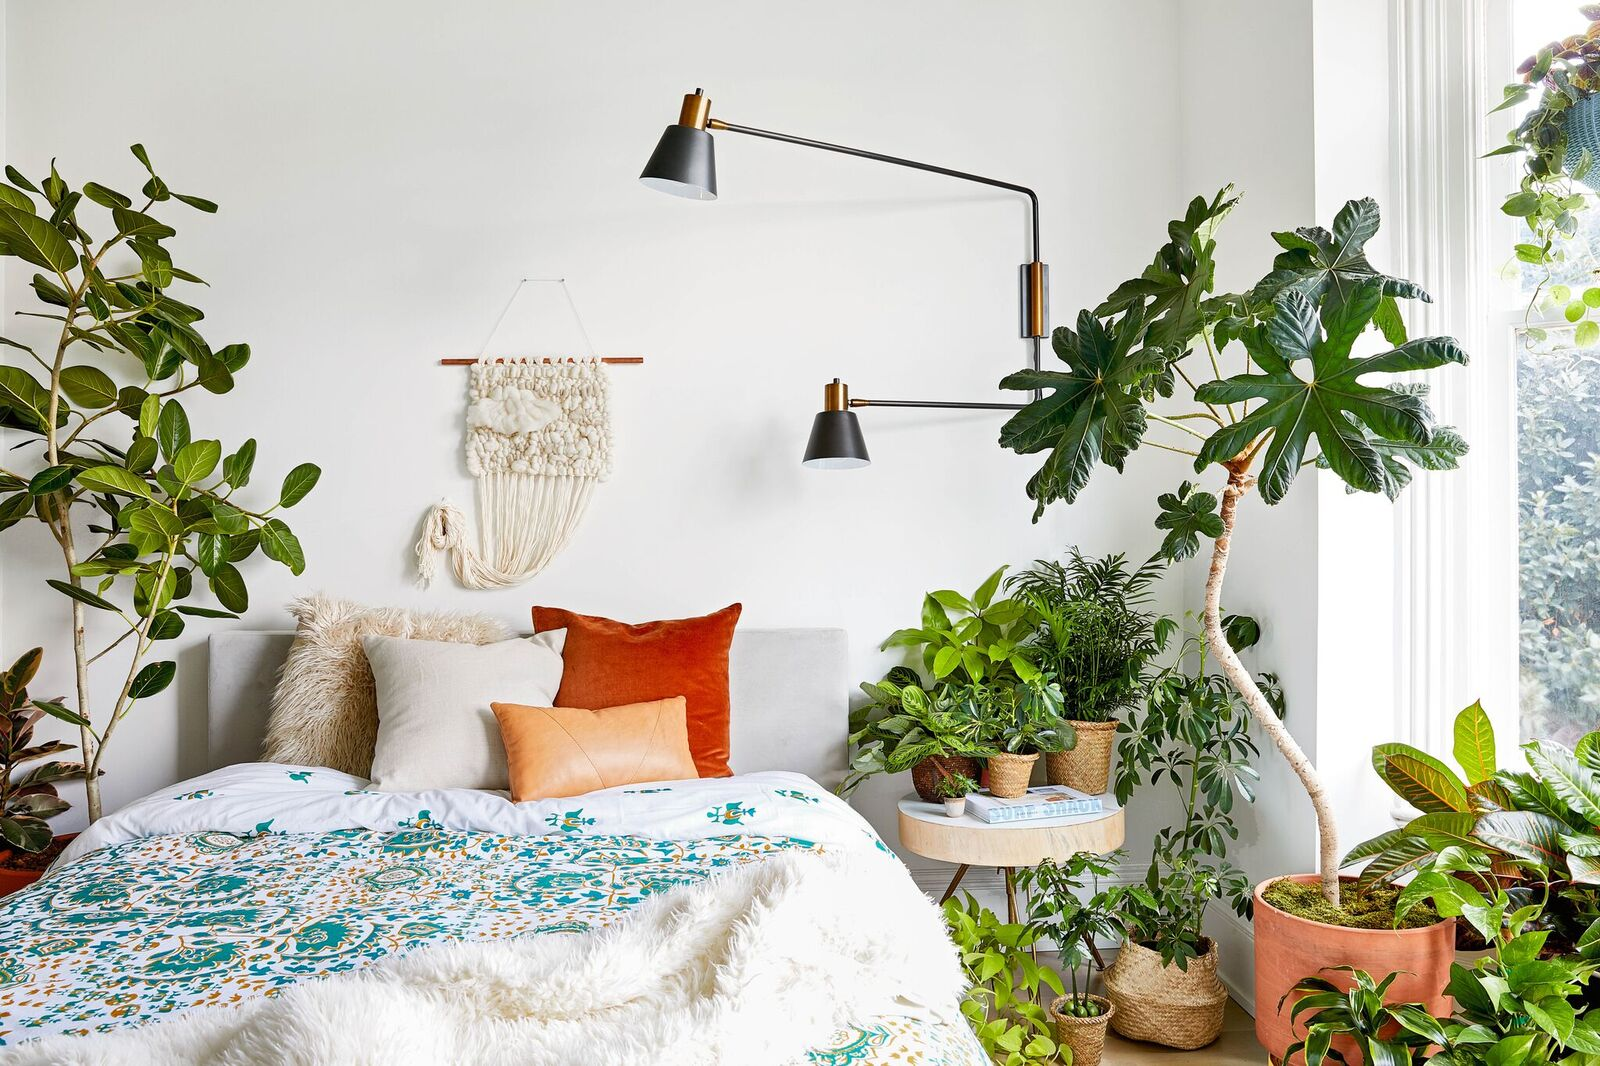 Bedroom decorated with lots of houseplants